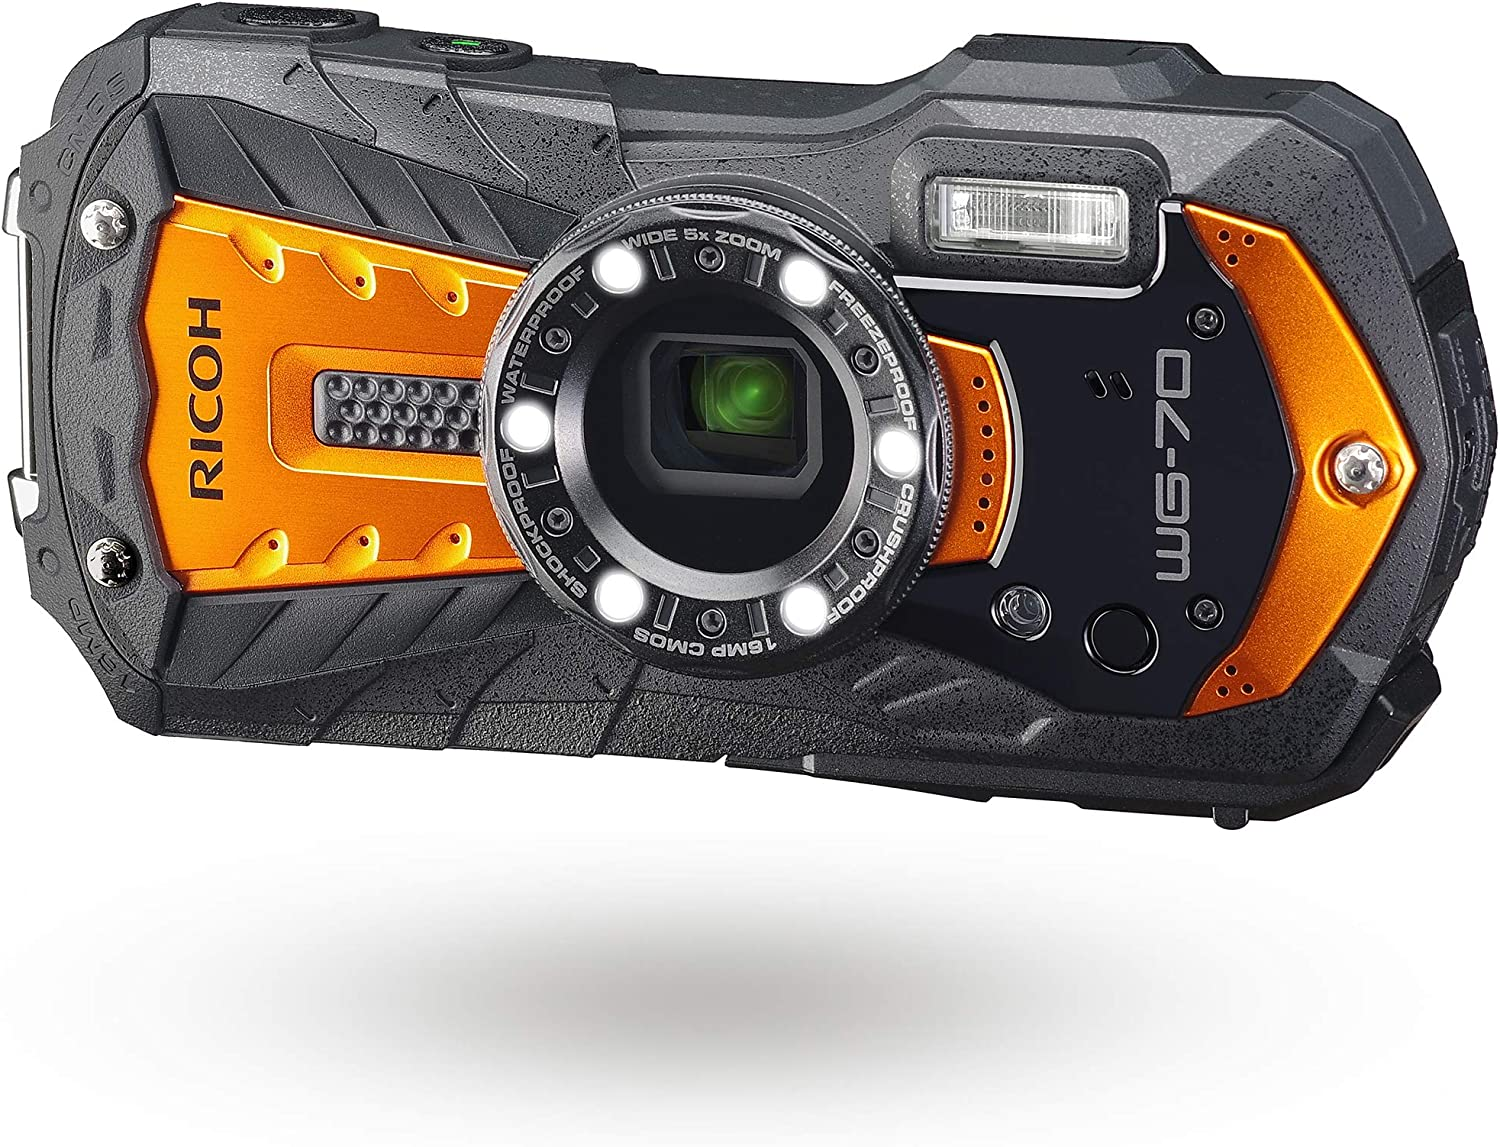 Amazon Opens Pre-Orders For RICOH WG-70 Waterproof Digital Camera